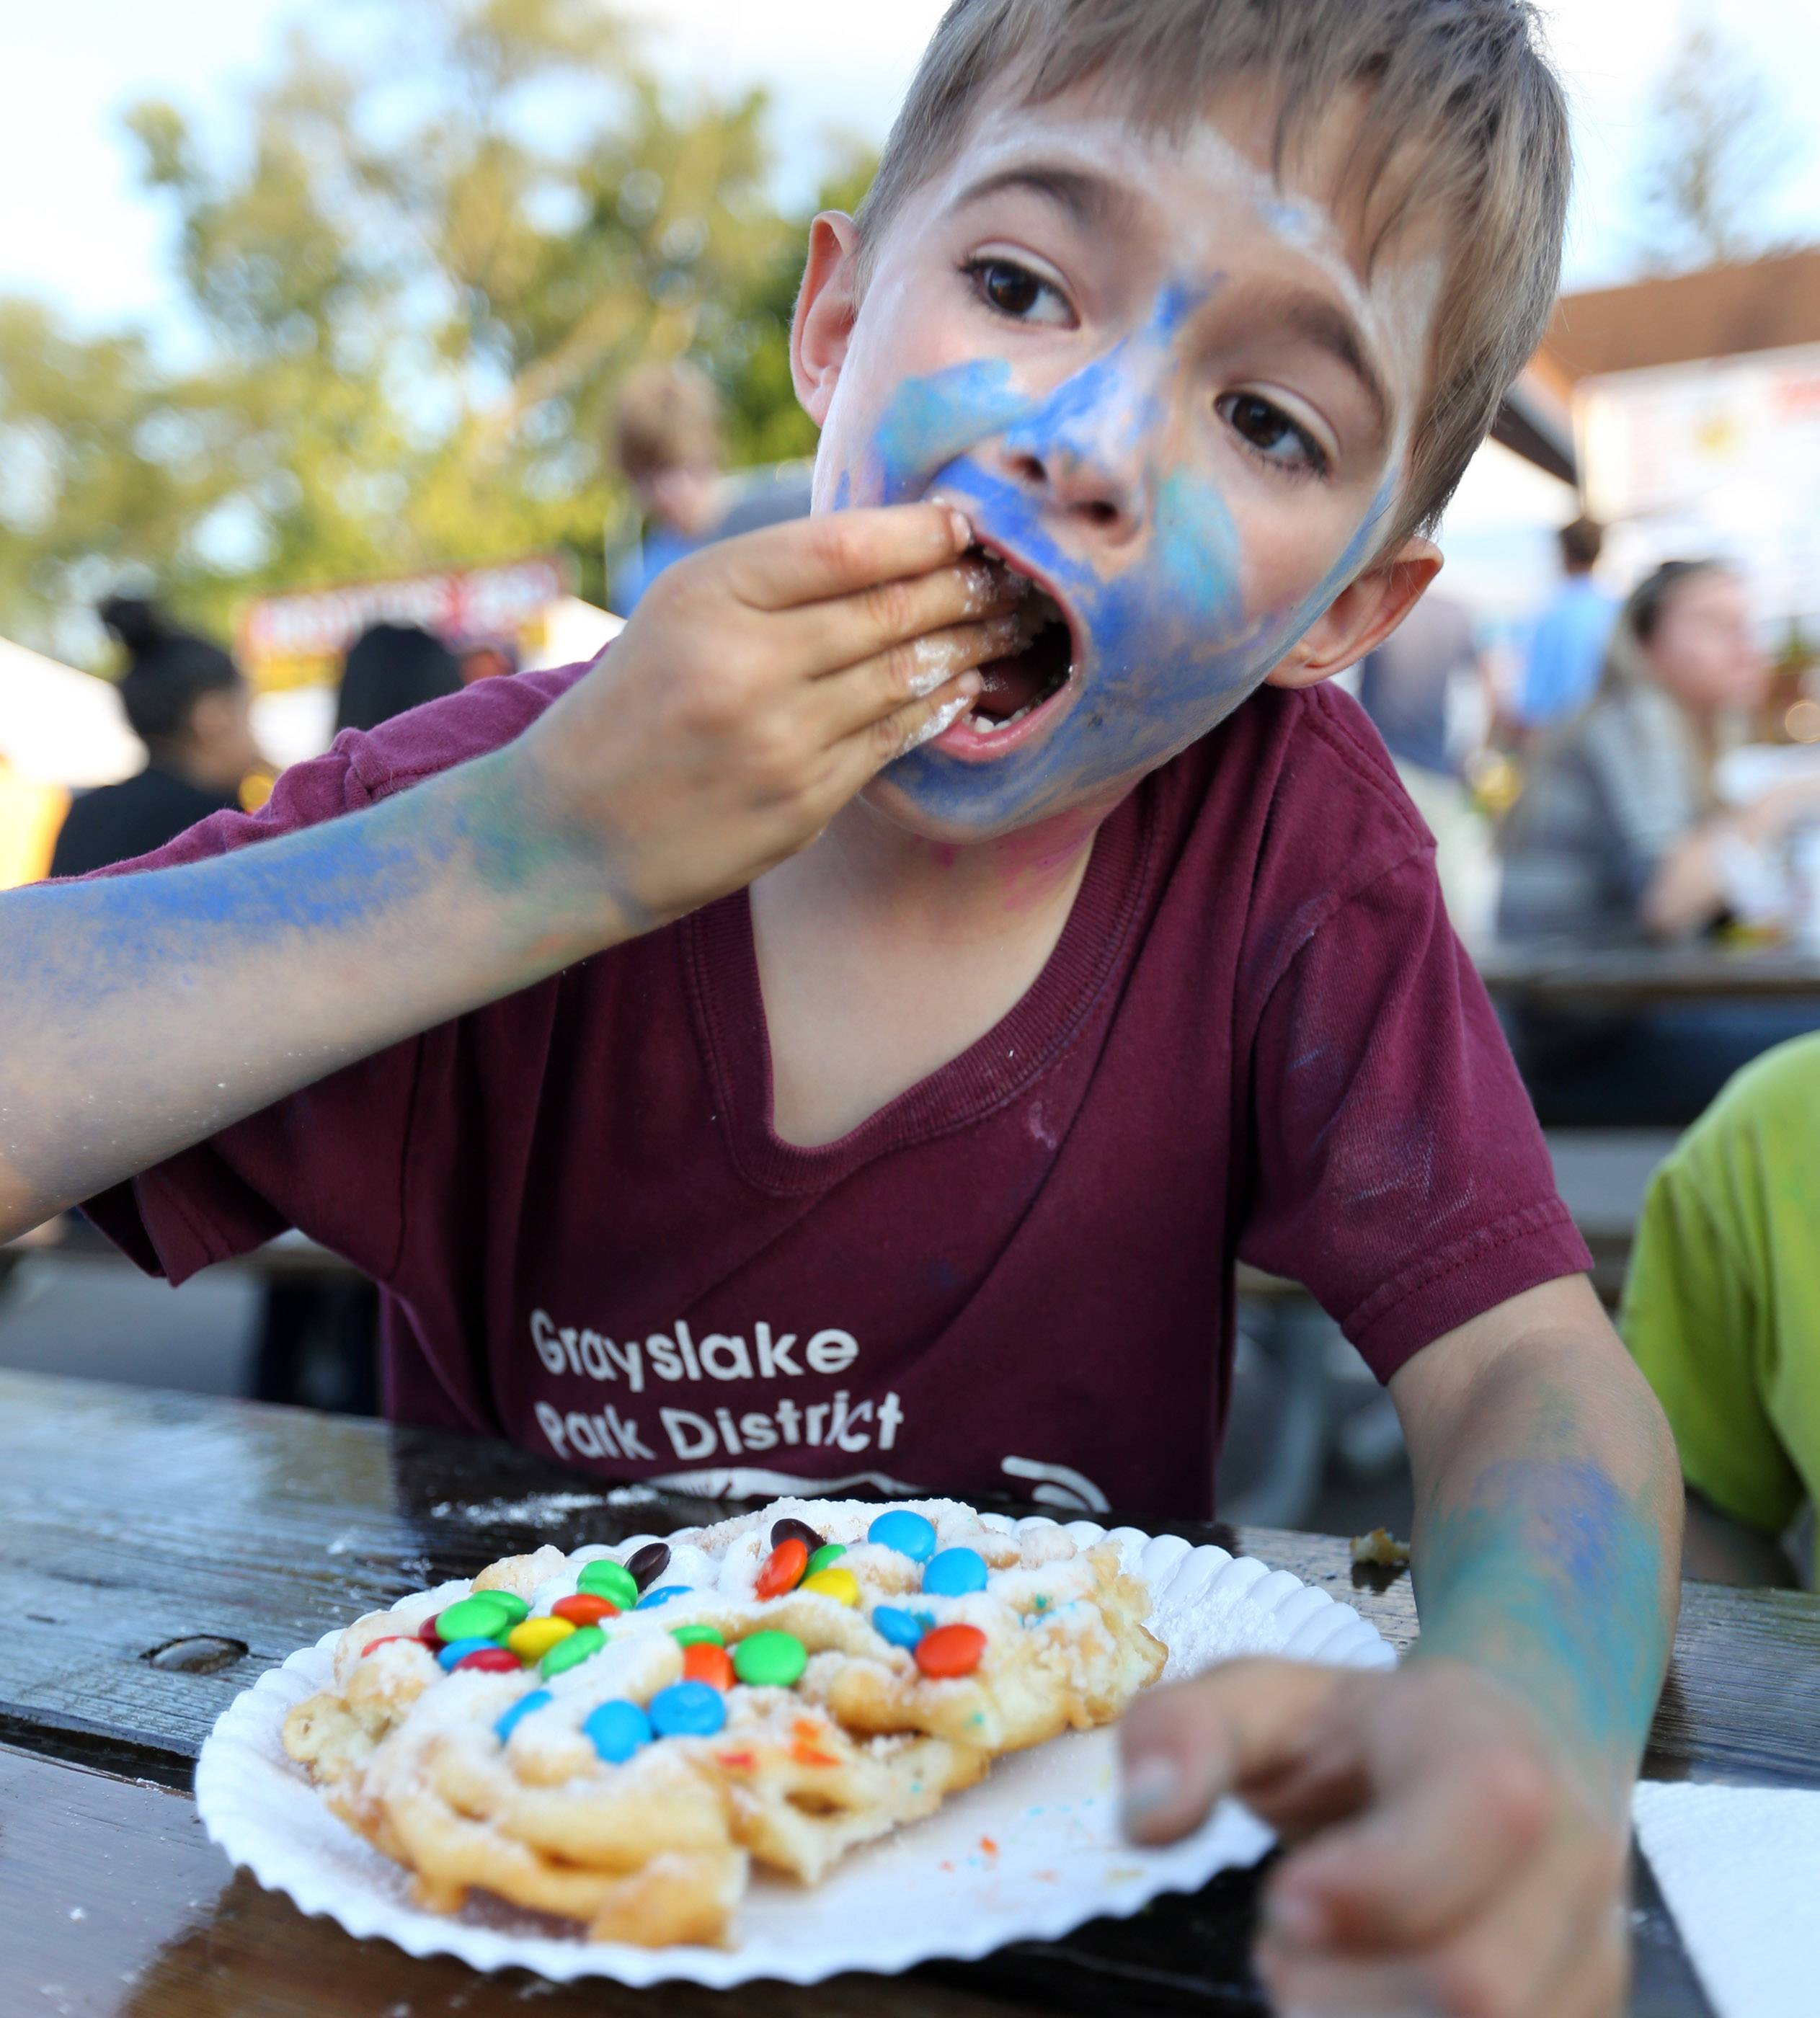 Joey Pavlik, 3, of Grayslake, said the best food item at the first day of Grayslake Summer Days festival is the M&M funnel cake.